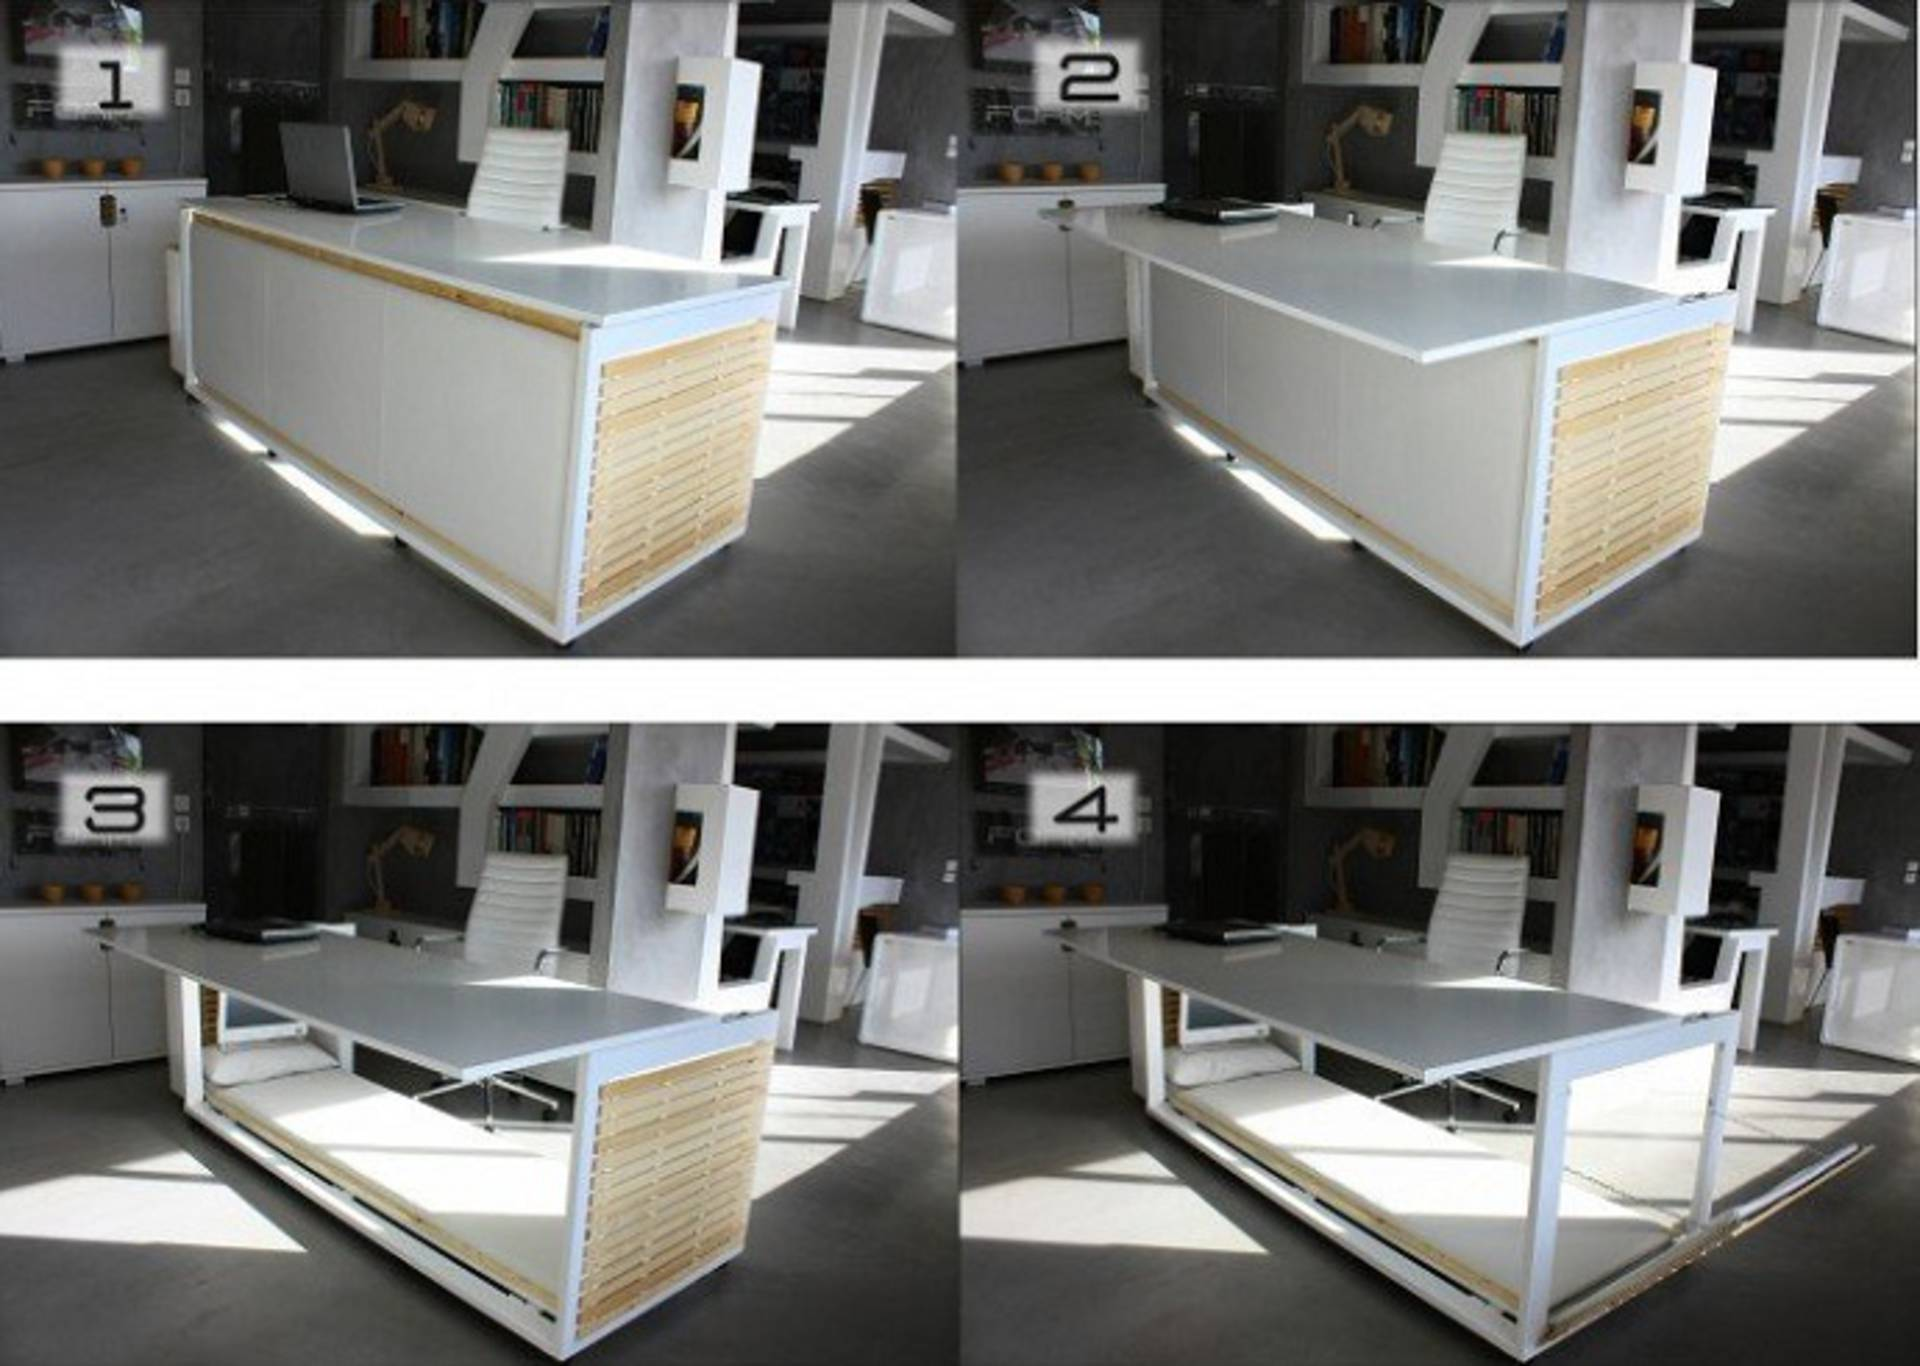 Desk Bed for Office by Studio NL Home Reviews